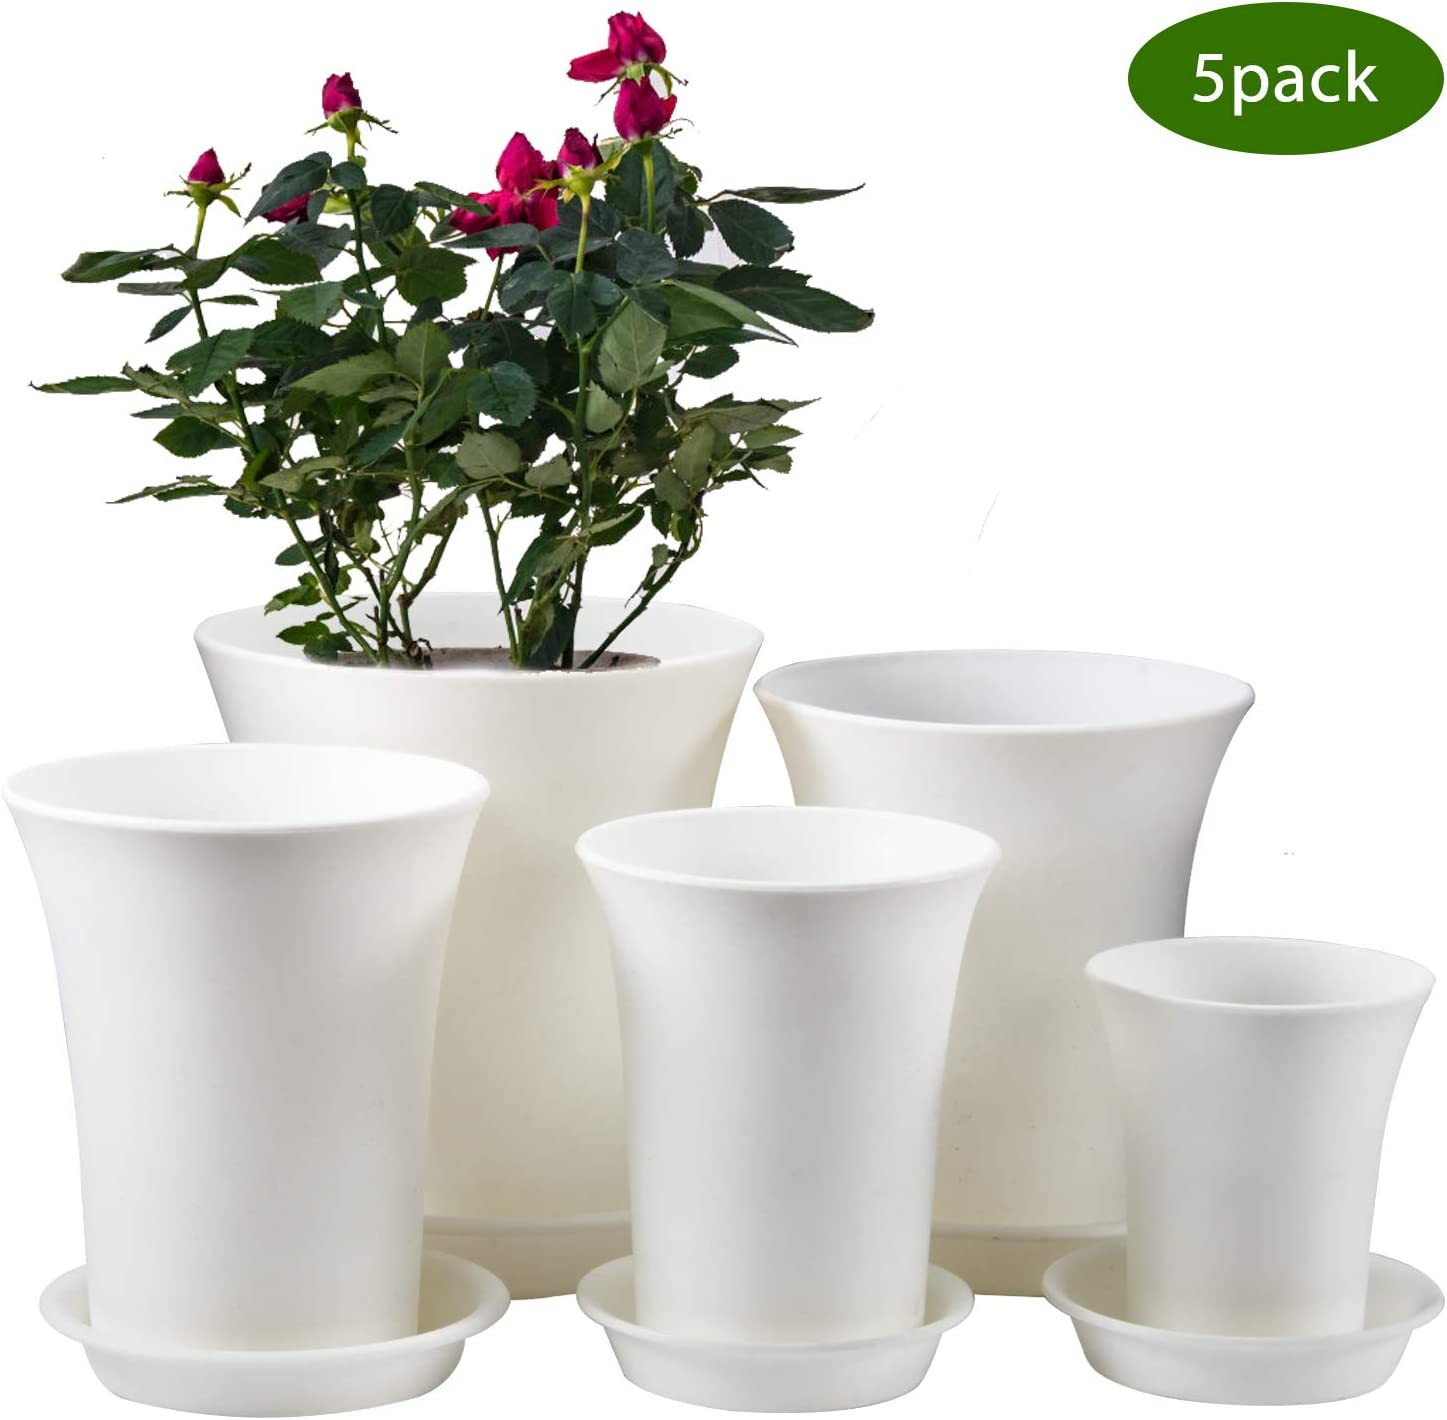 Plants not Included 7.1 Inch Plastic Flower Pot Outdoor Planters with Drainage Hole and Tray ZOUTOG Plant Pots Pack of 10